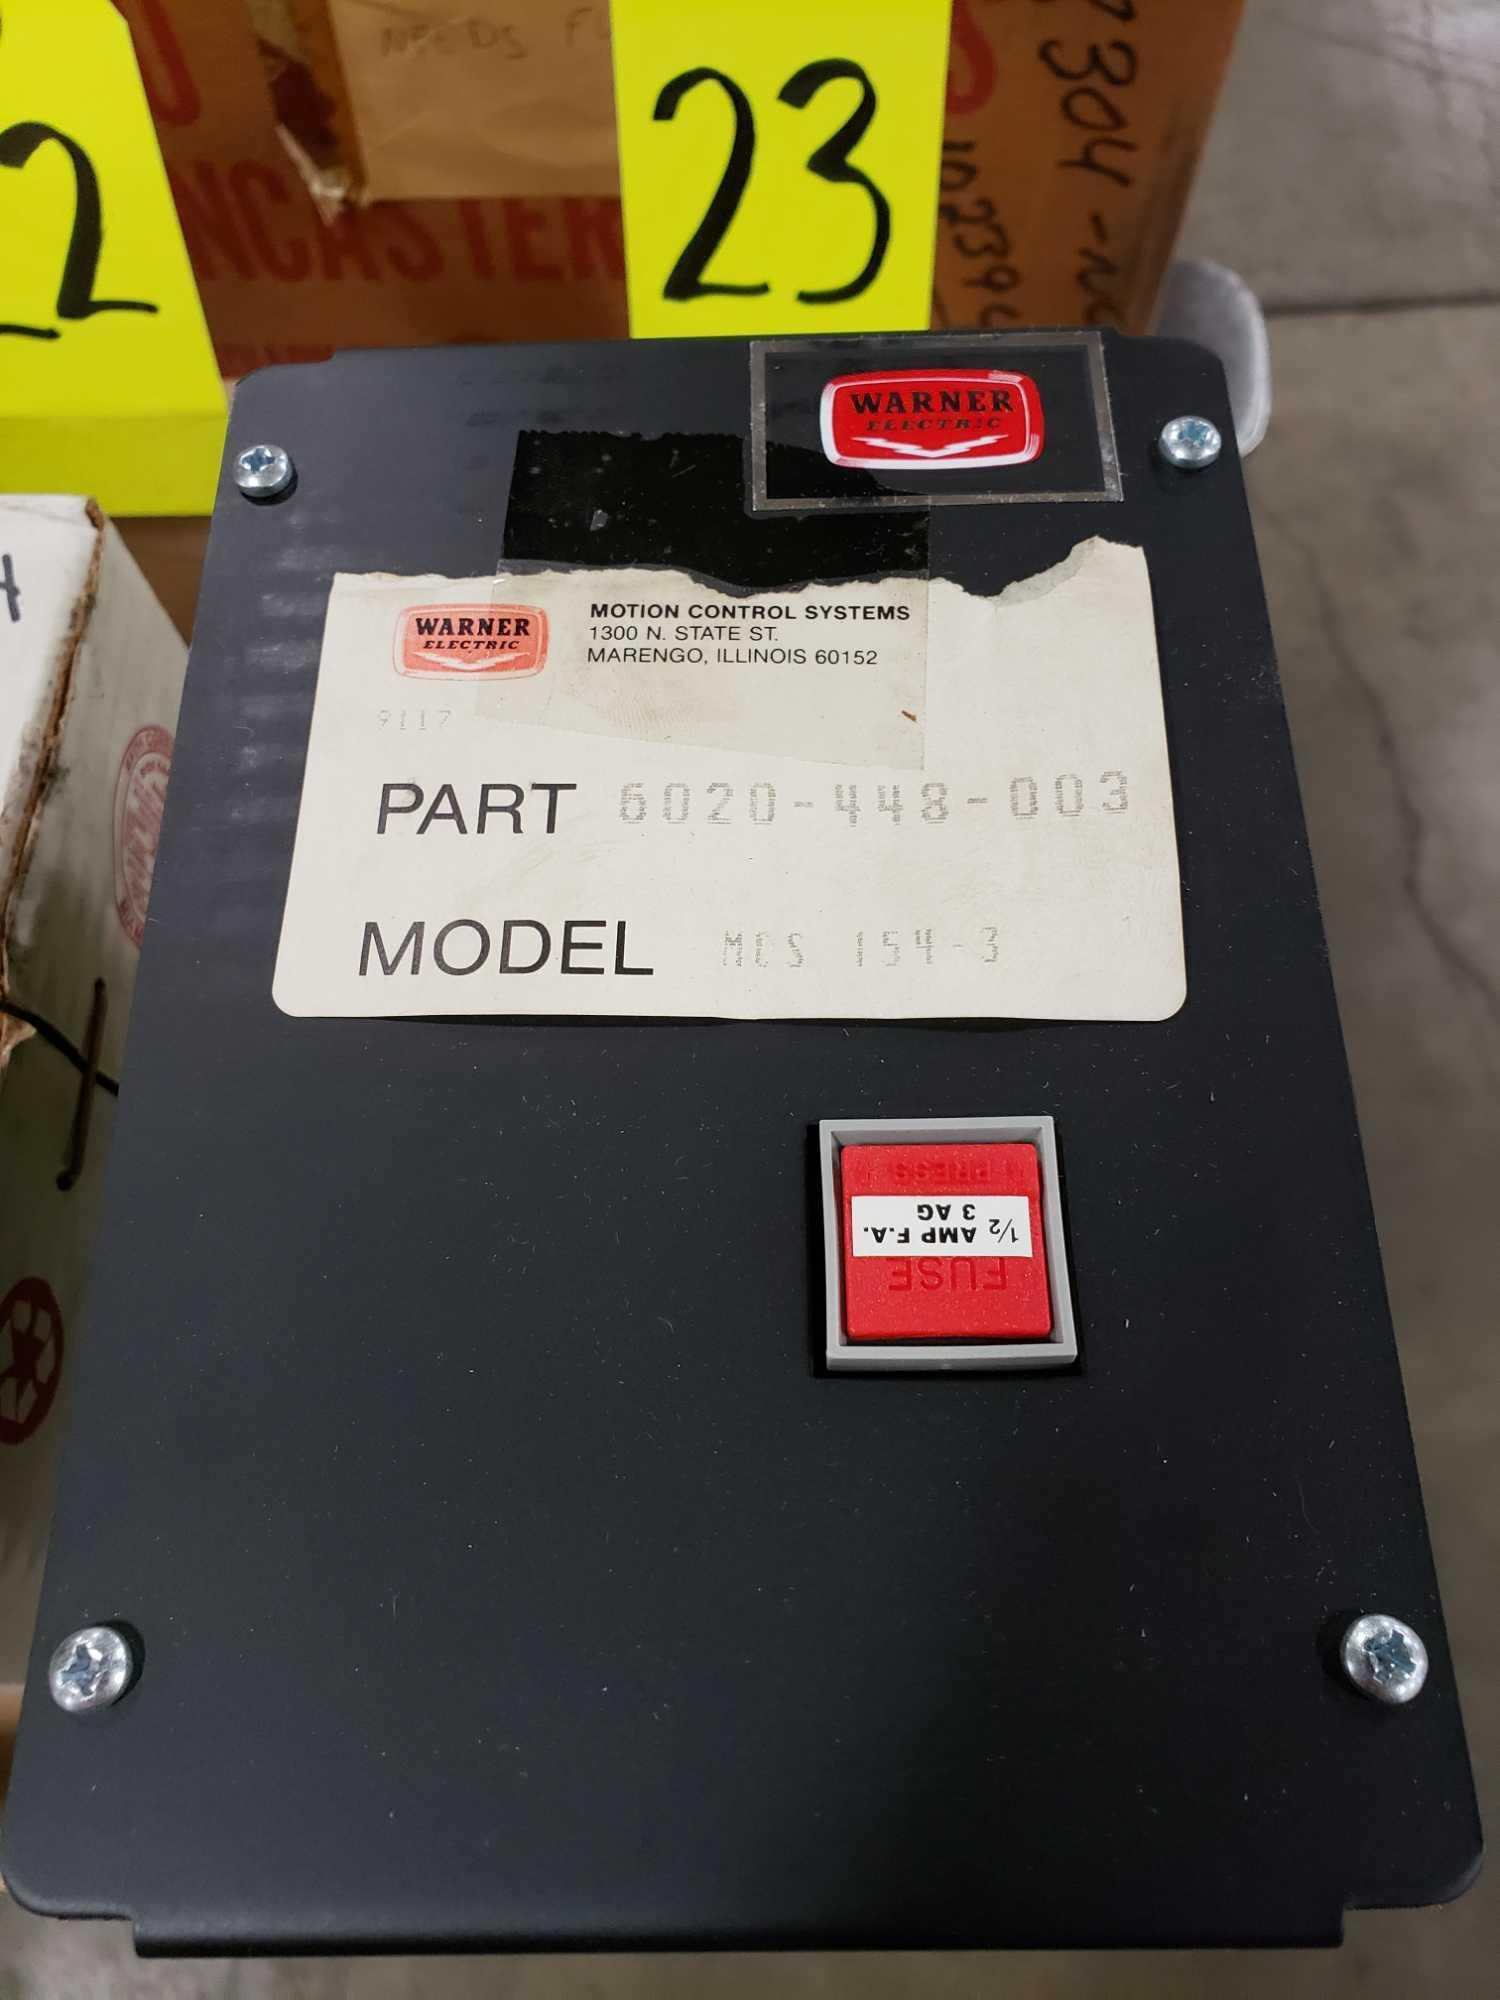 Warner Electric drive model MCS-154-3, part number 6020-448-003. New in box. - Image 2 of 3